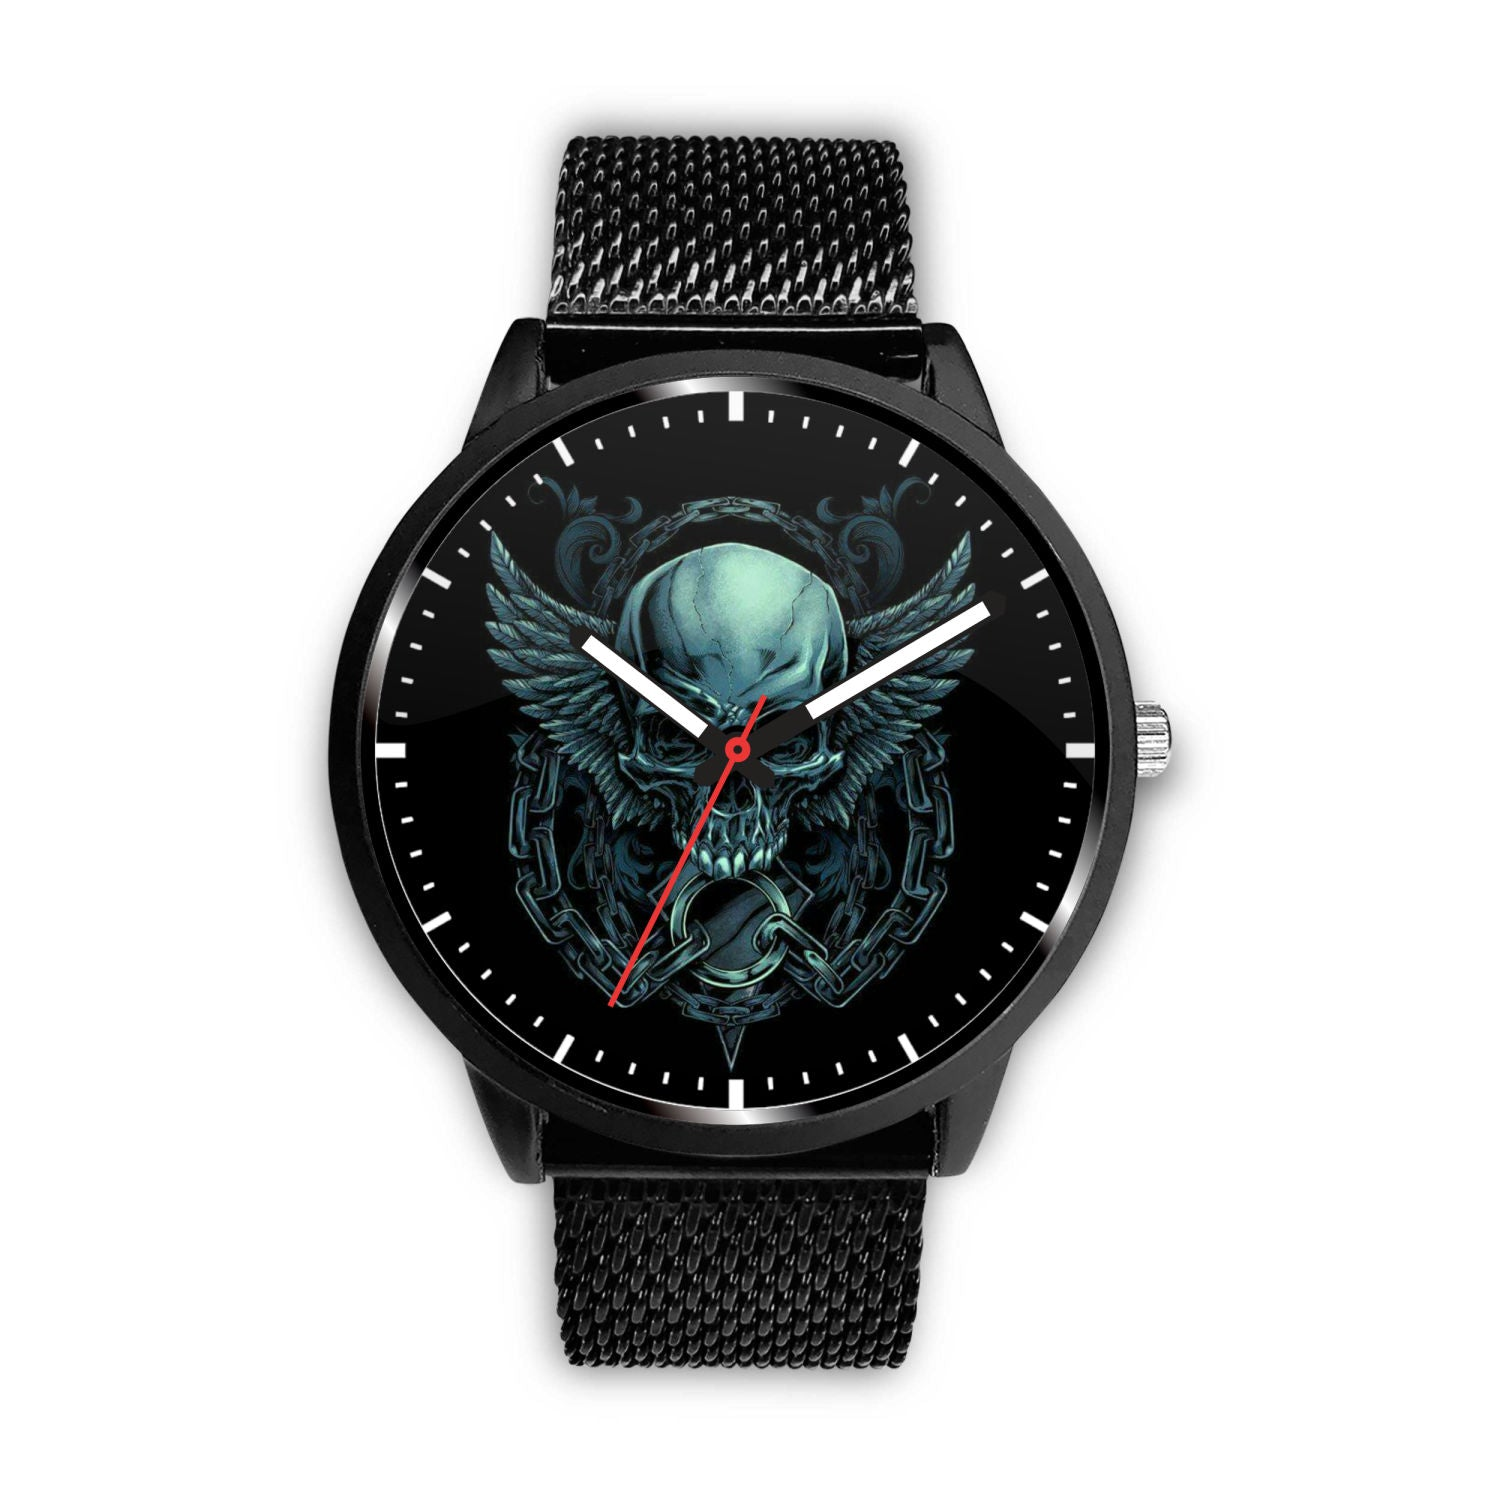 Skull Watch - Stainless steel back with leather/ stainless steel band 007